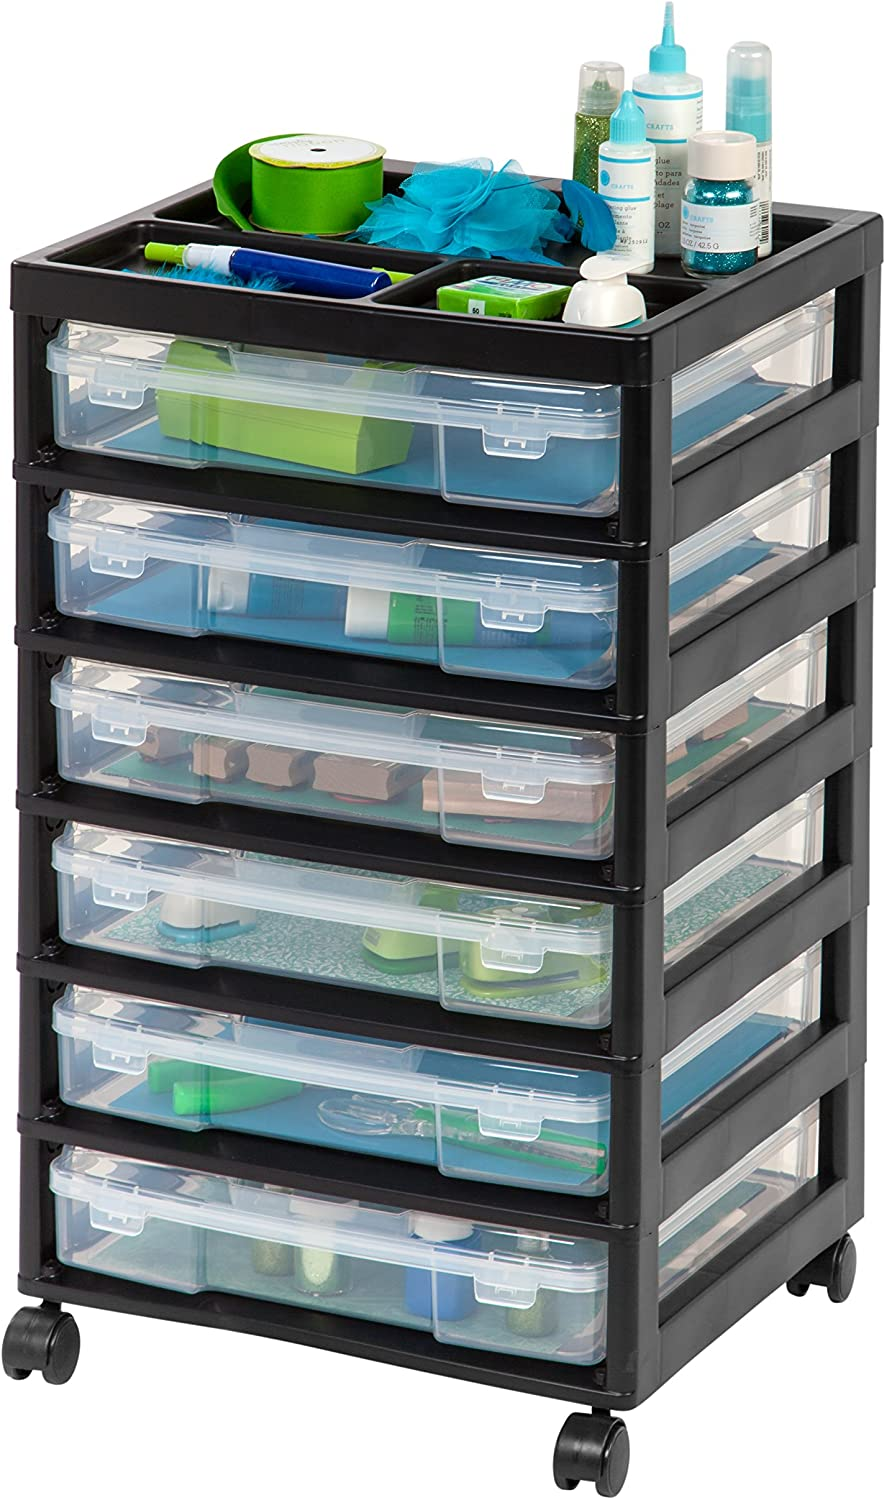 Selling IRIS USA 150816 6-Drawer Scrapbook with sold out Organizer Top Cart